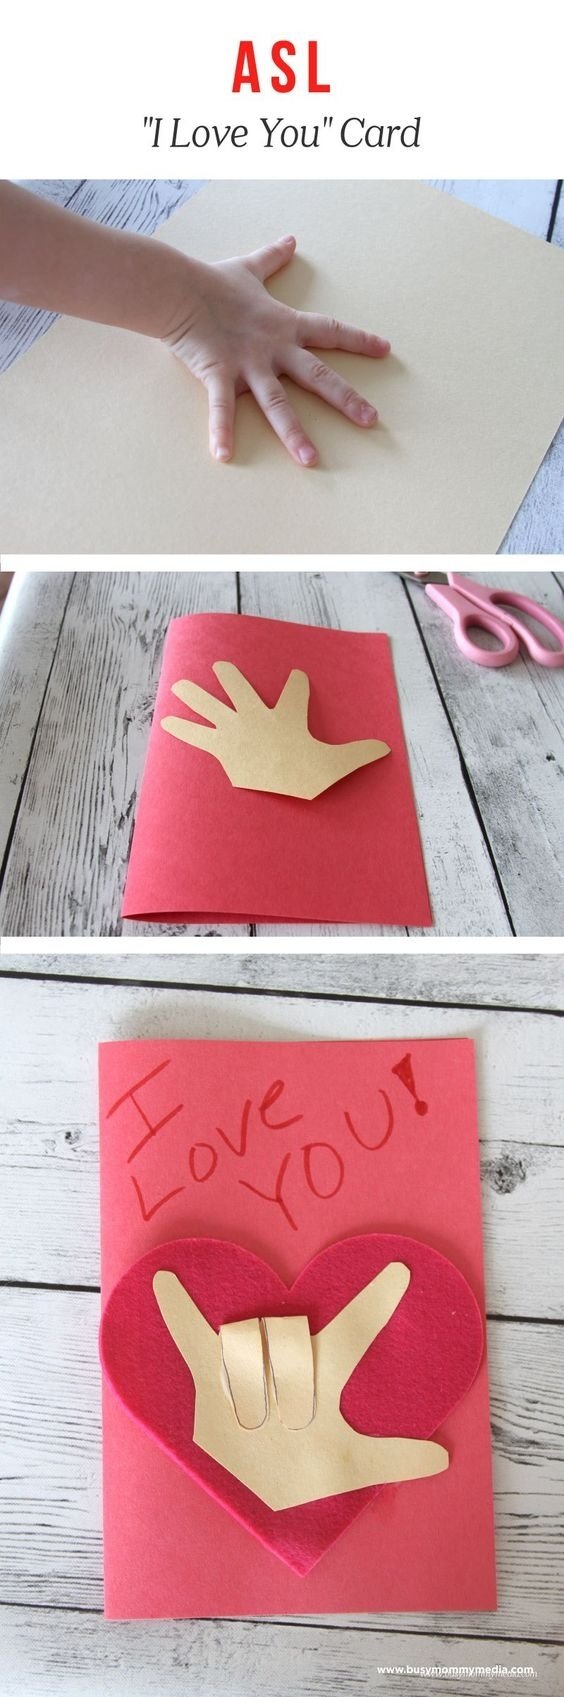 10 Amazing Crafts For Valentines Day Ideas fun and easy valentines day kids crafts simple pink love red 1 2020